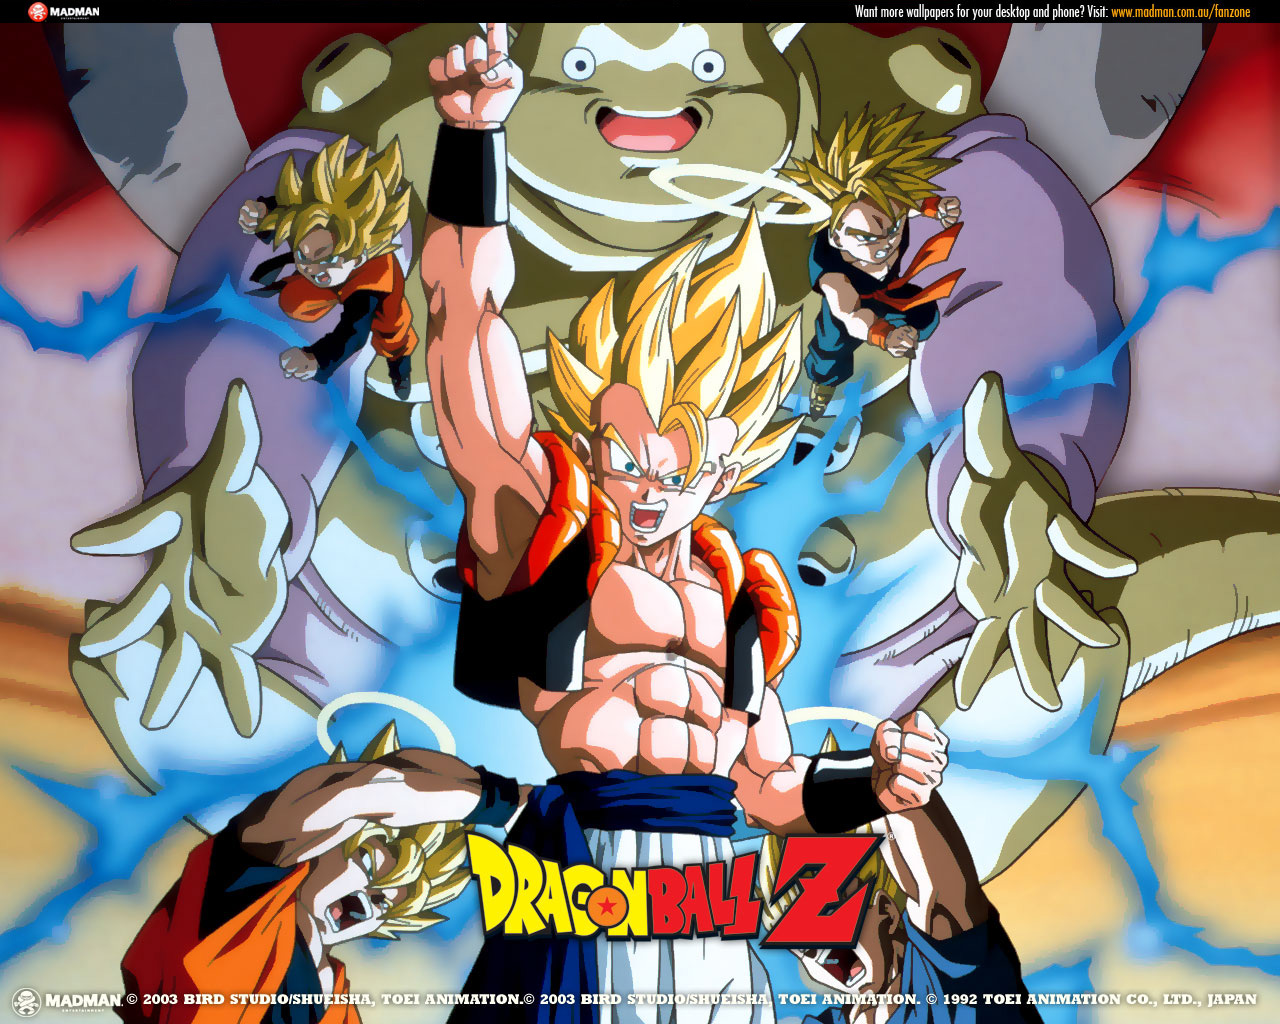 Anime Wallpapers HD Dragon Ball Wallpapers HD 1280x1024